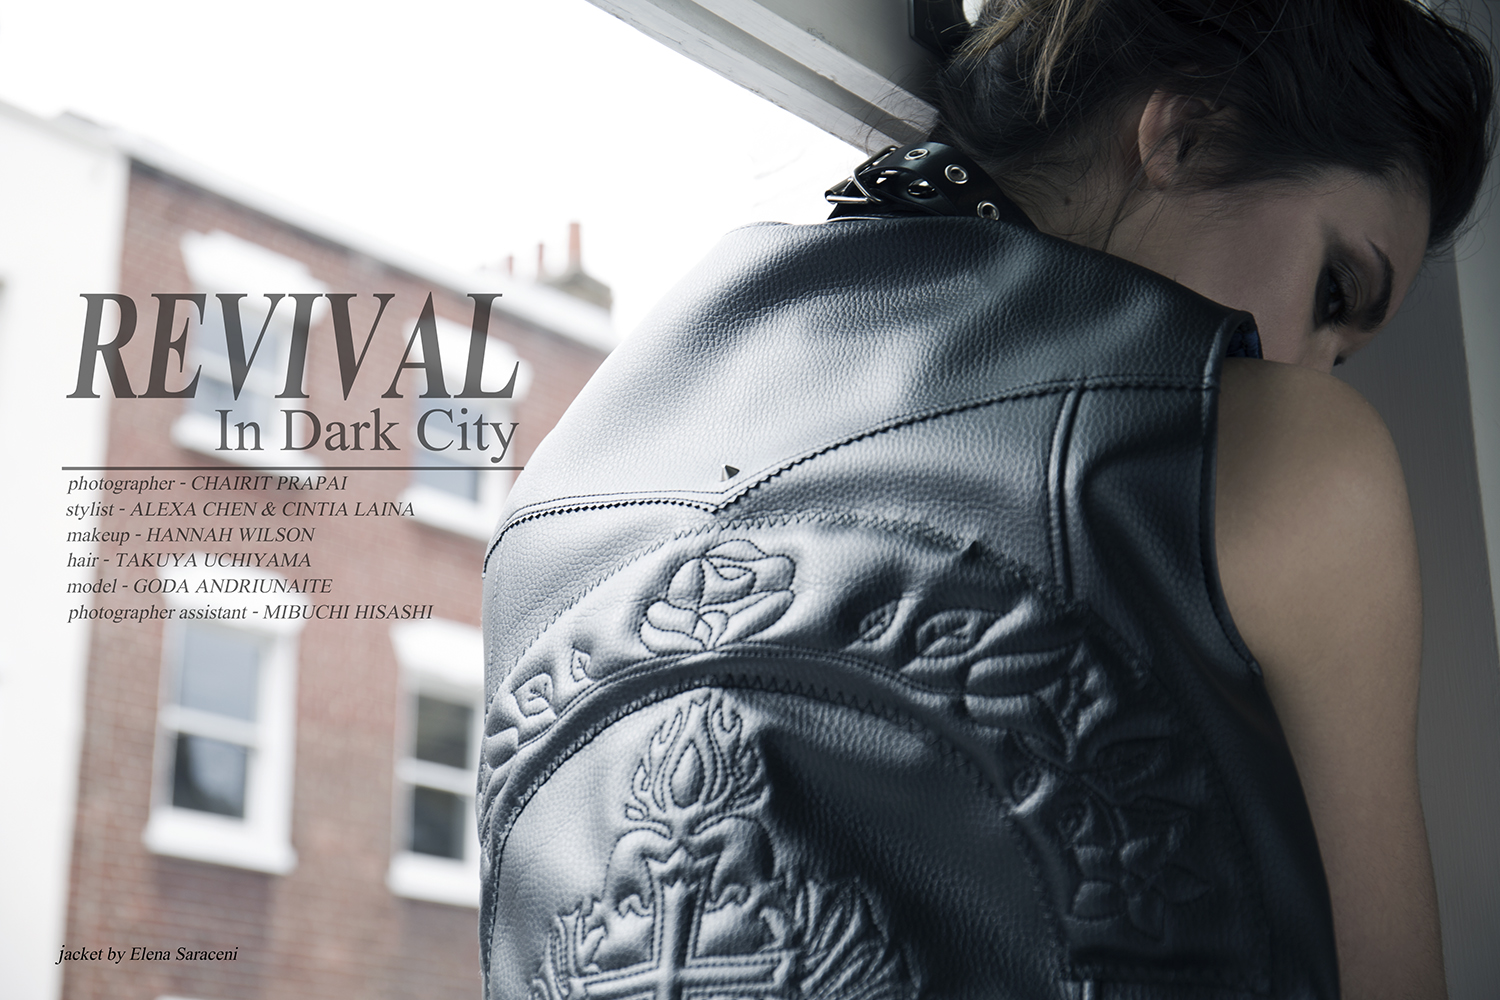 Fashion Editorial: Revival in Dark City